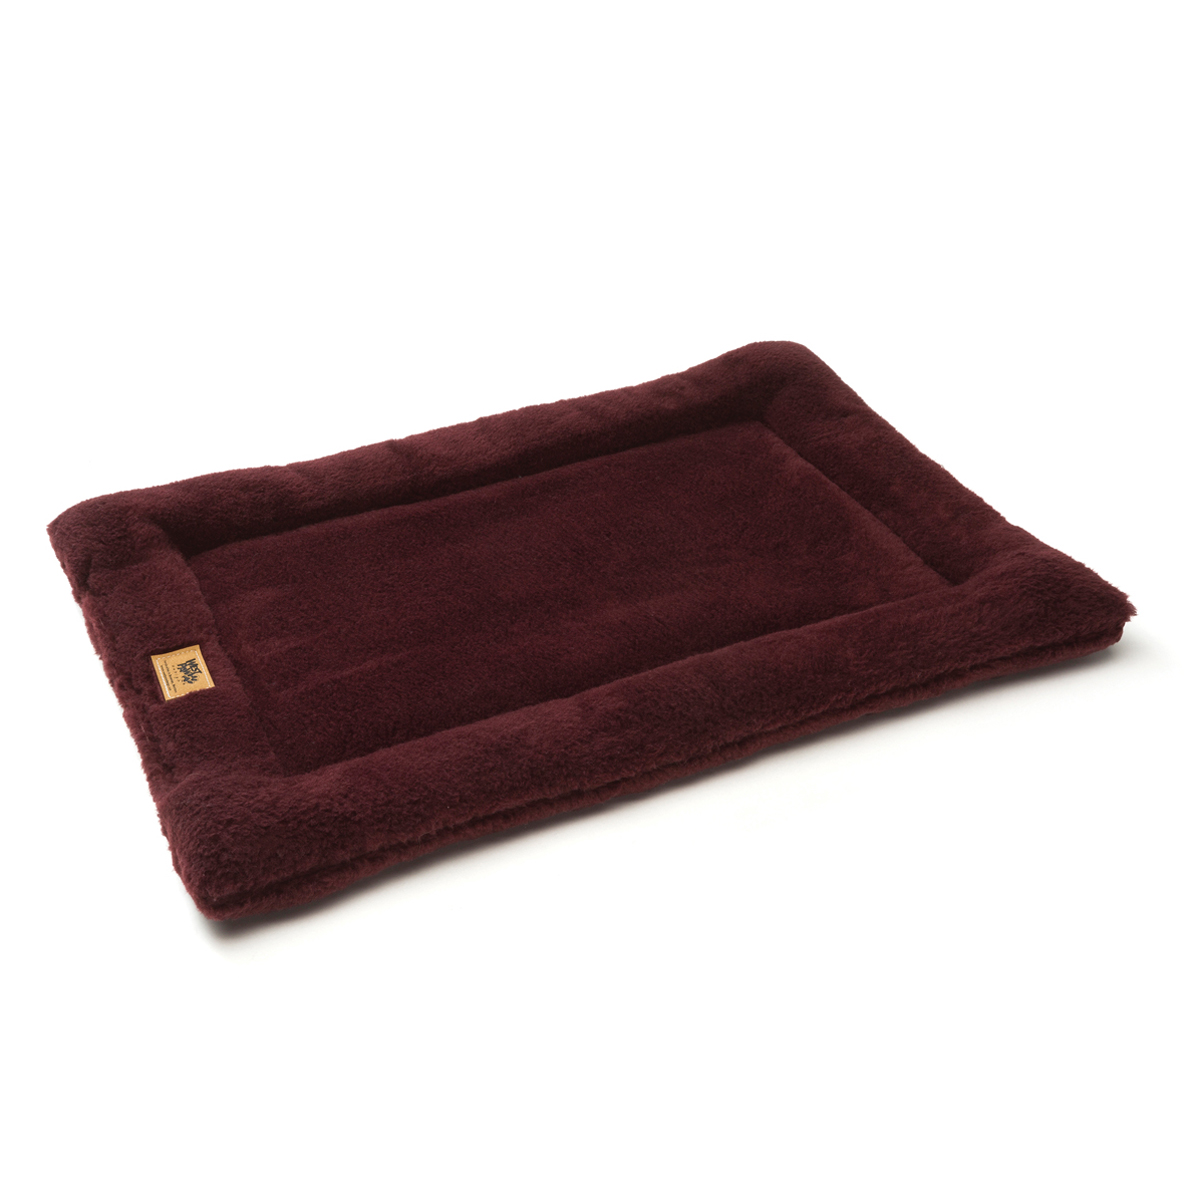 Montana Nap Pet Bed by West Paw Design - Wine